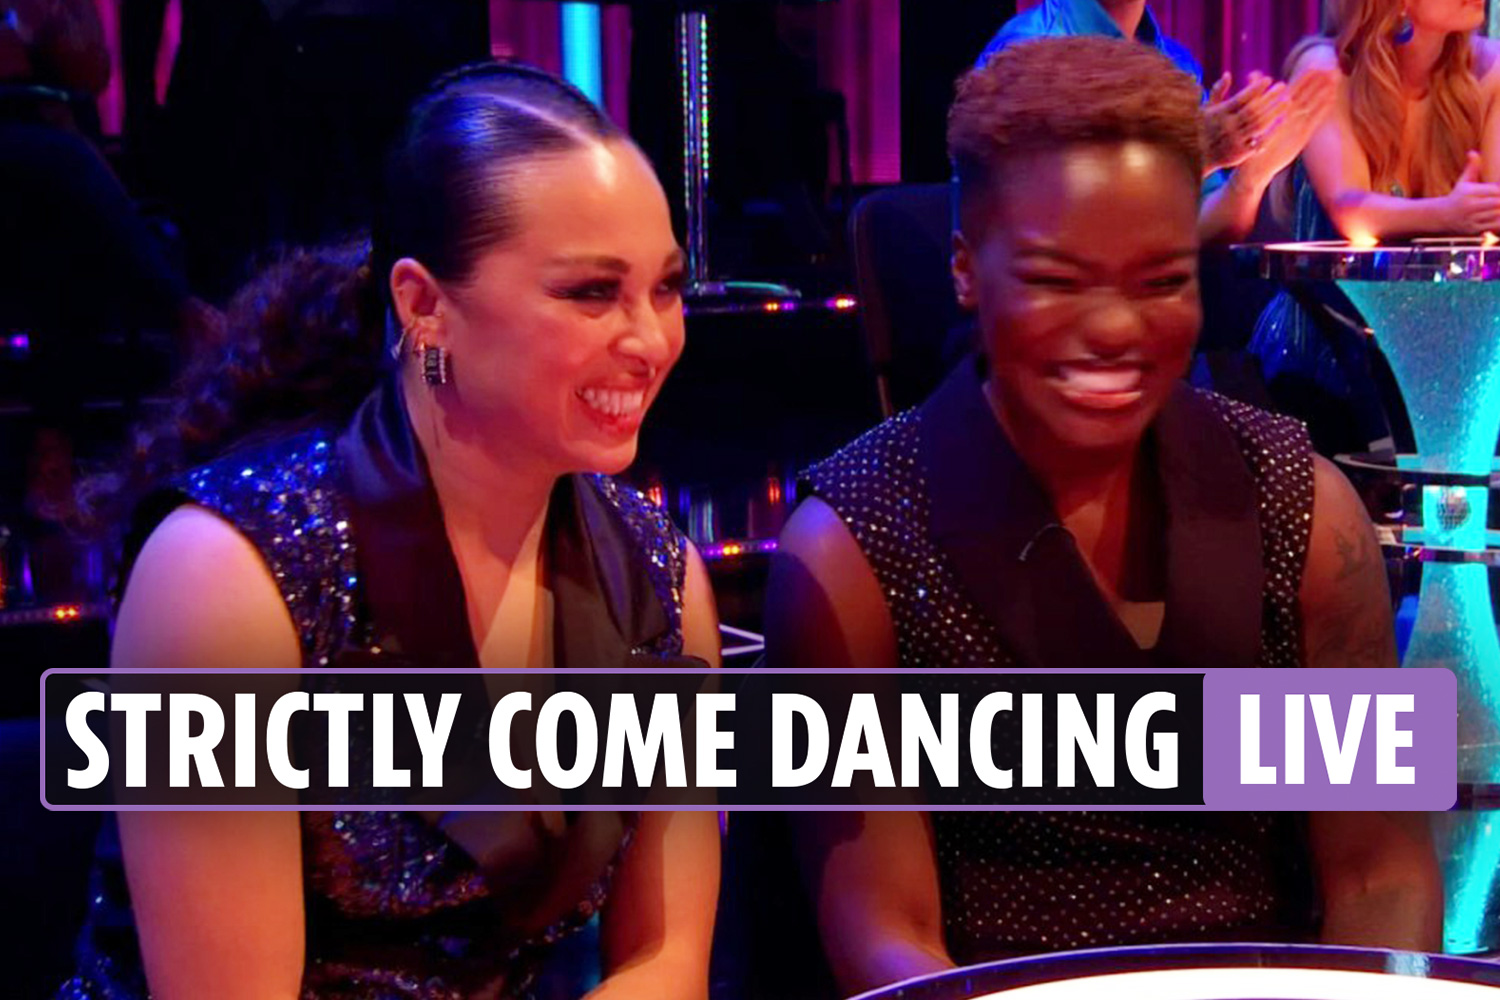 Strictly Come Dancing 2020 launch show LIVE: Nicola Adams vows to 'set fire to the dancefloor' in first same-sex couple